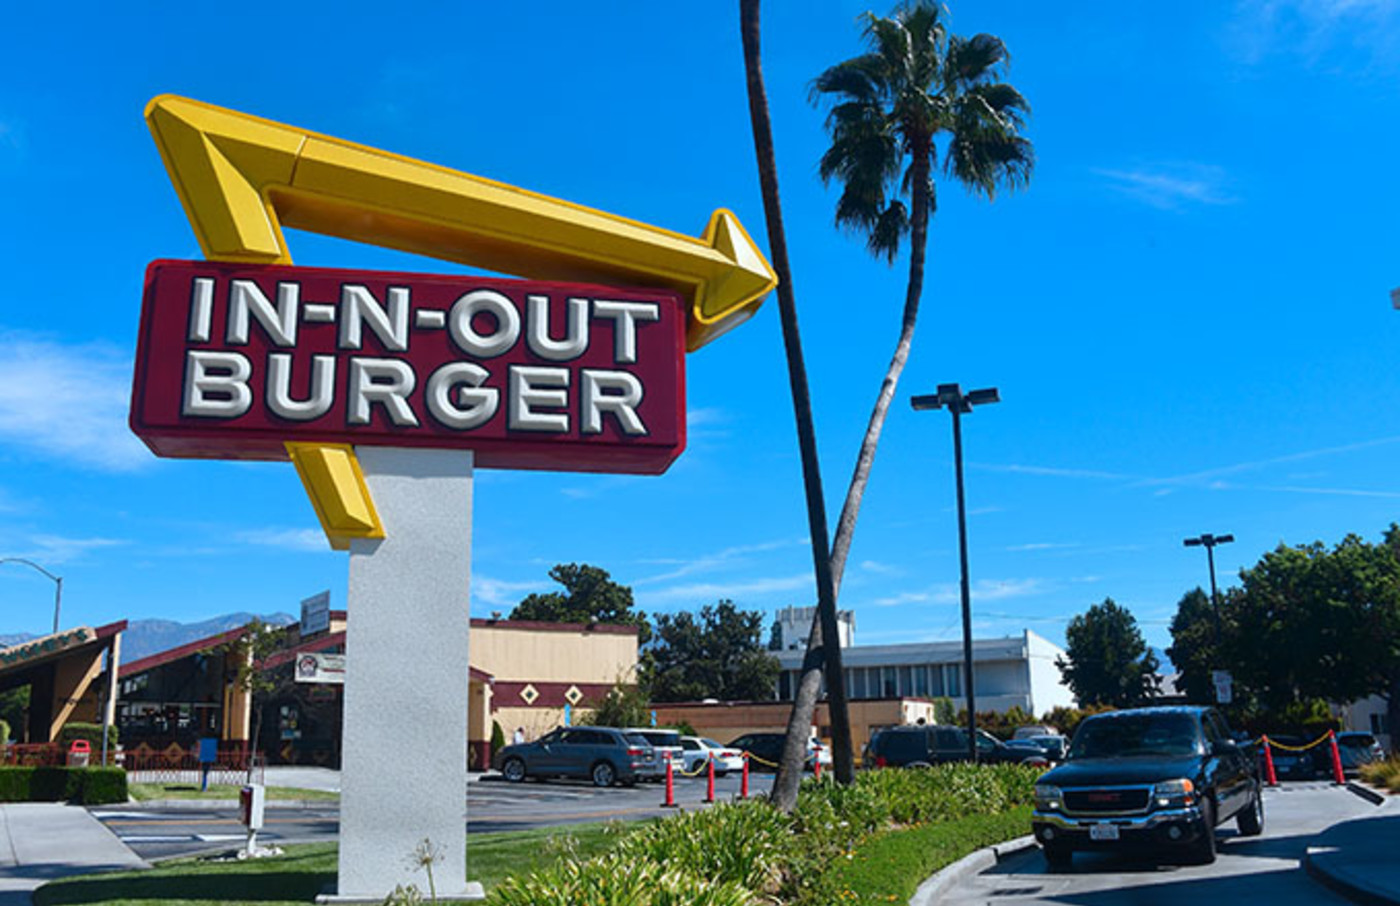 This is a photo of In-N-Out